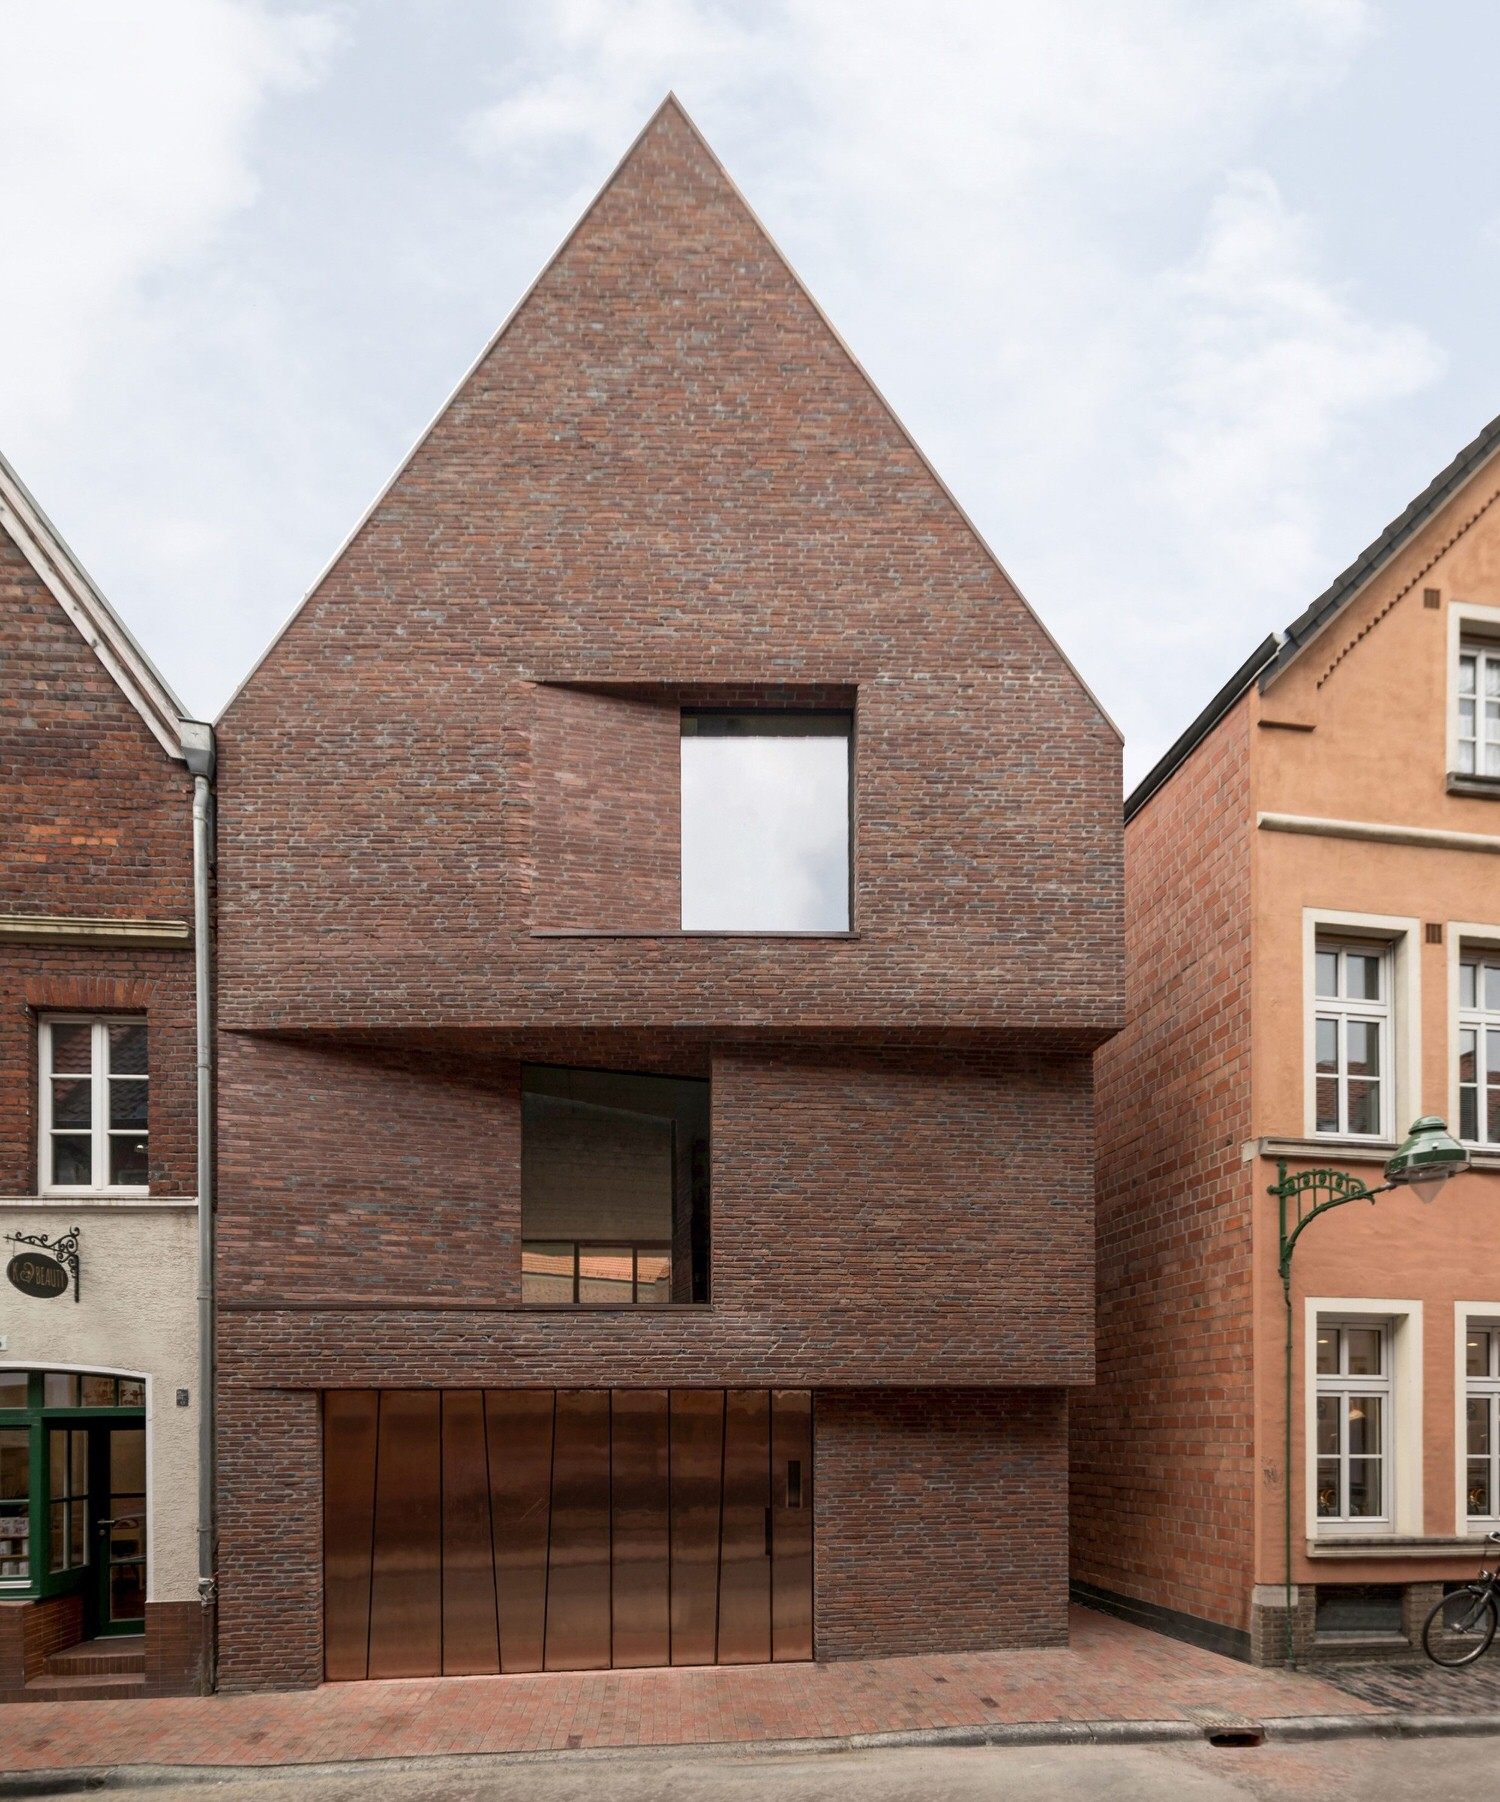 House in Buddentur, Munster, Germany by Hehnpohl Architektur, Best of Brick Architecture | Yellowtrace